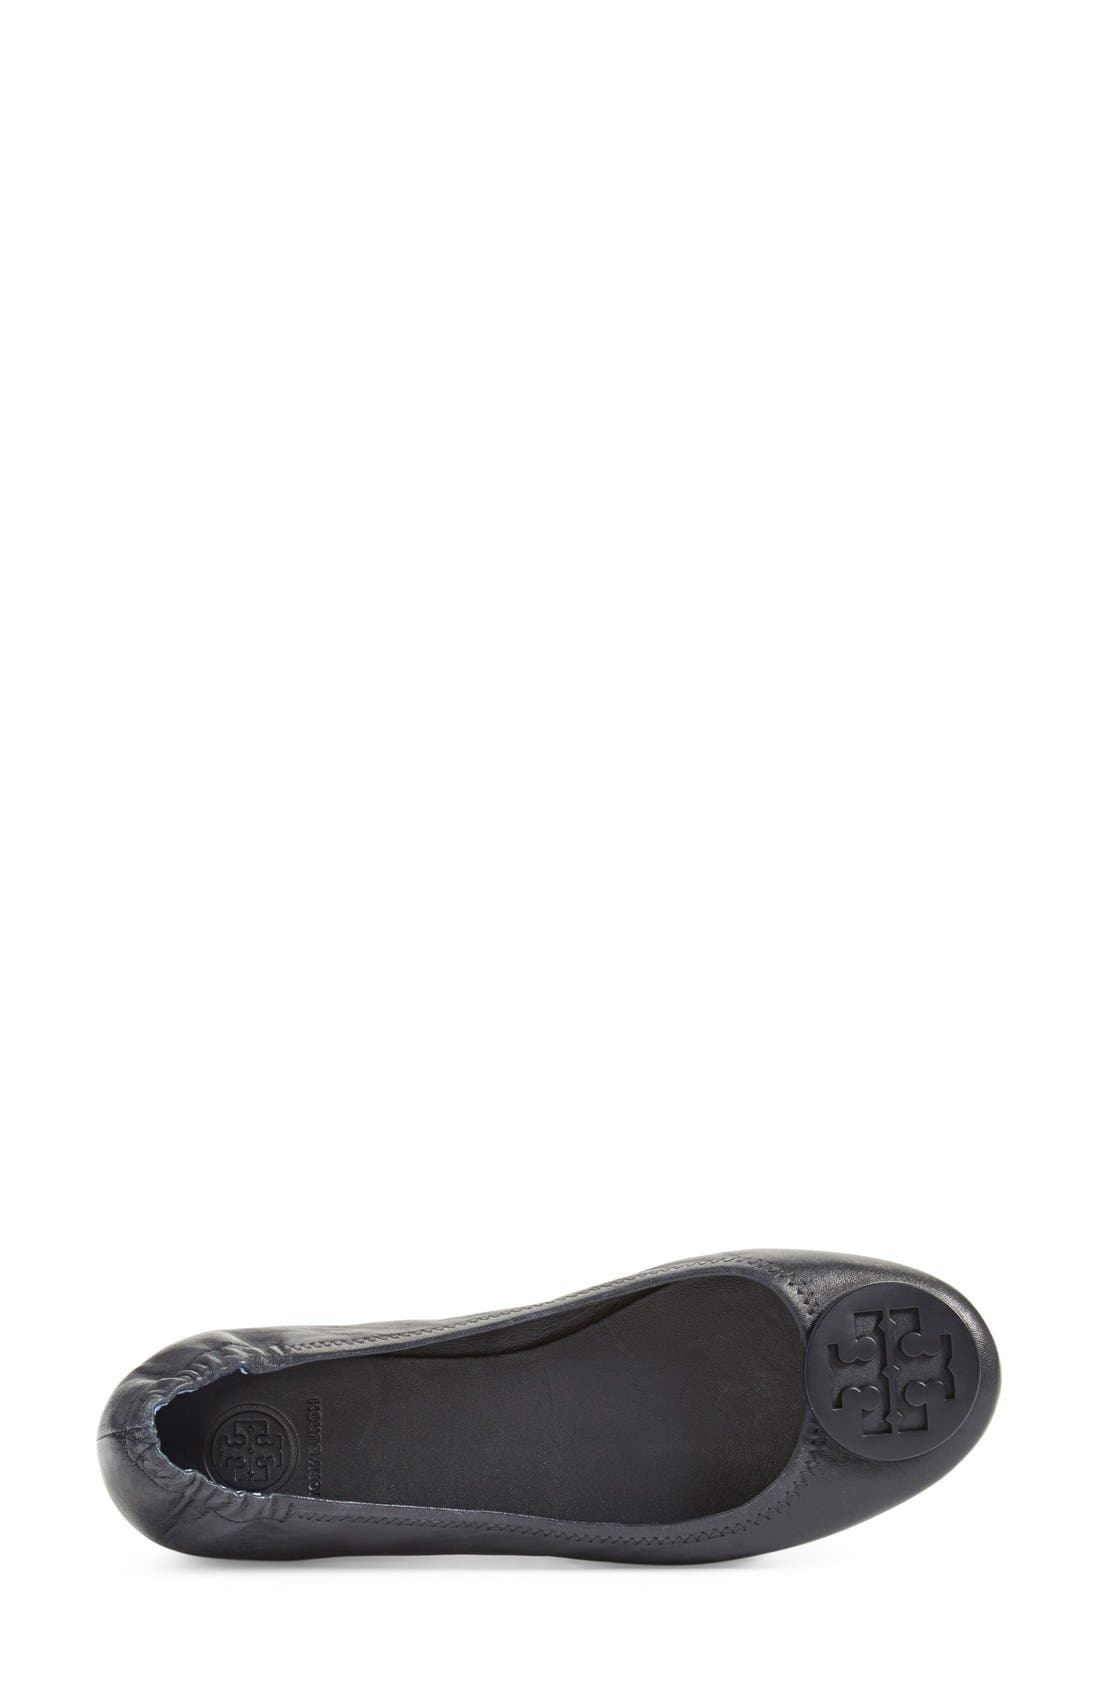 Alternate Image 3  - Tory Burch 'Minnie' Travel Ballet Flat (Women)